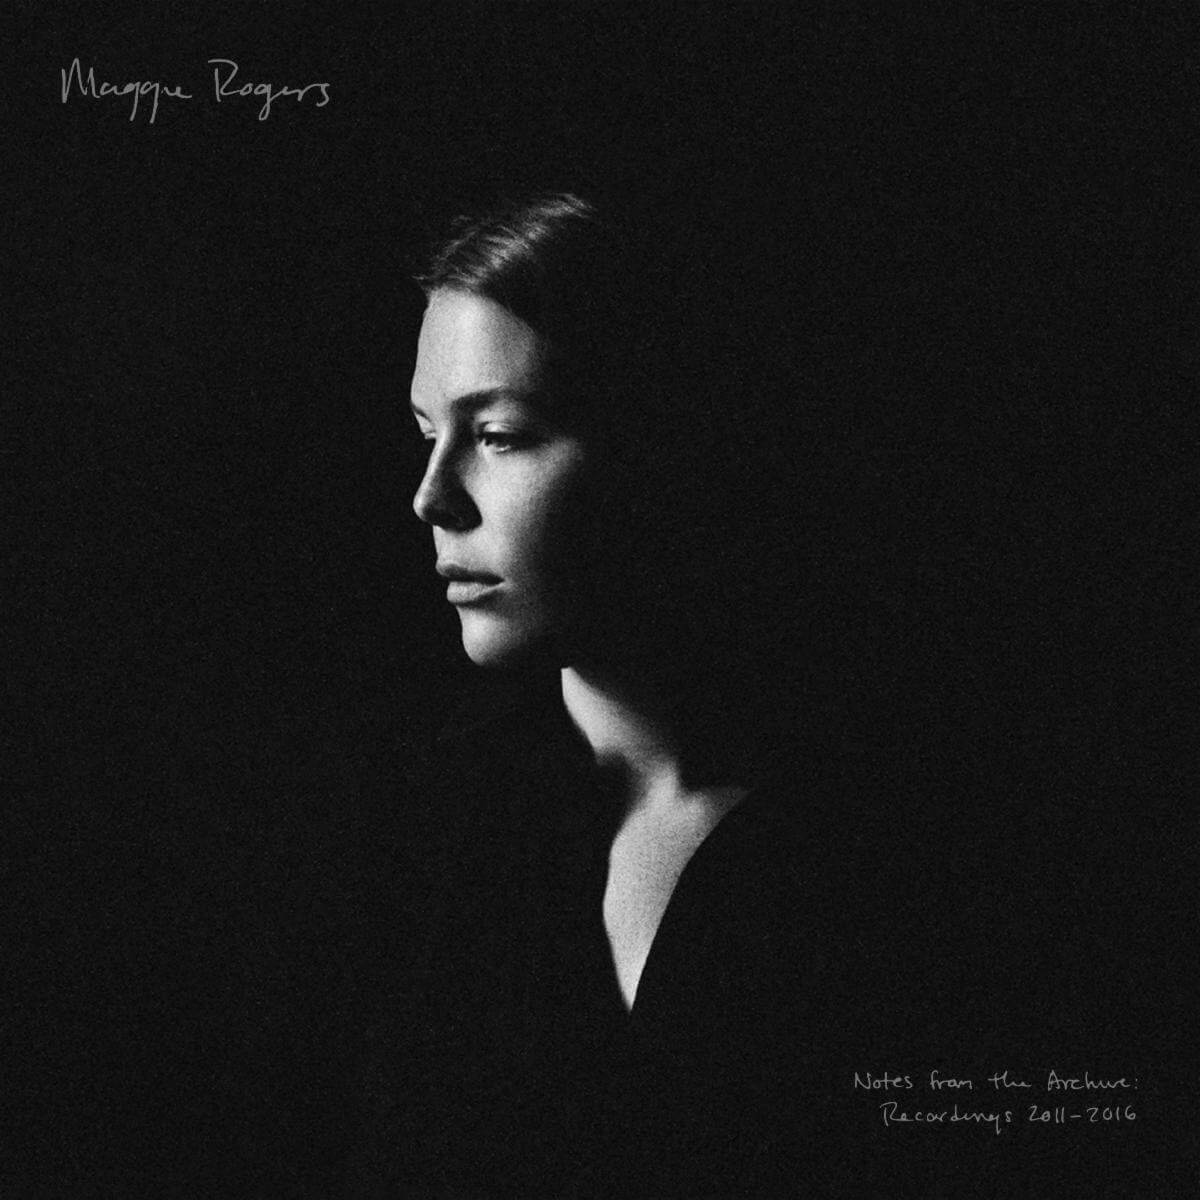 Maggie Rogers has shared Notes from the Archive: Recordings 2011-2016. The 16-track retrospective featuring newly remastered versions